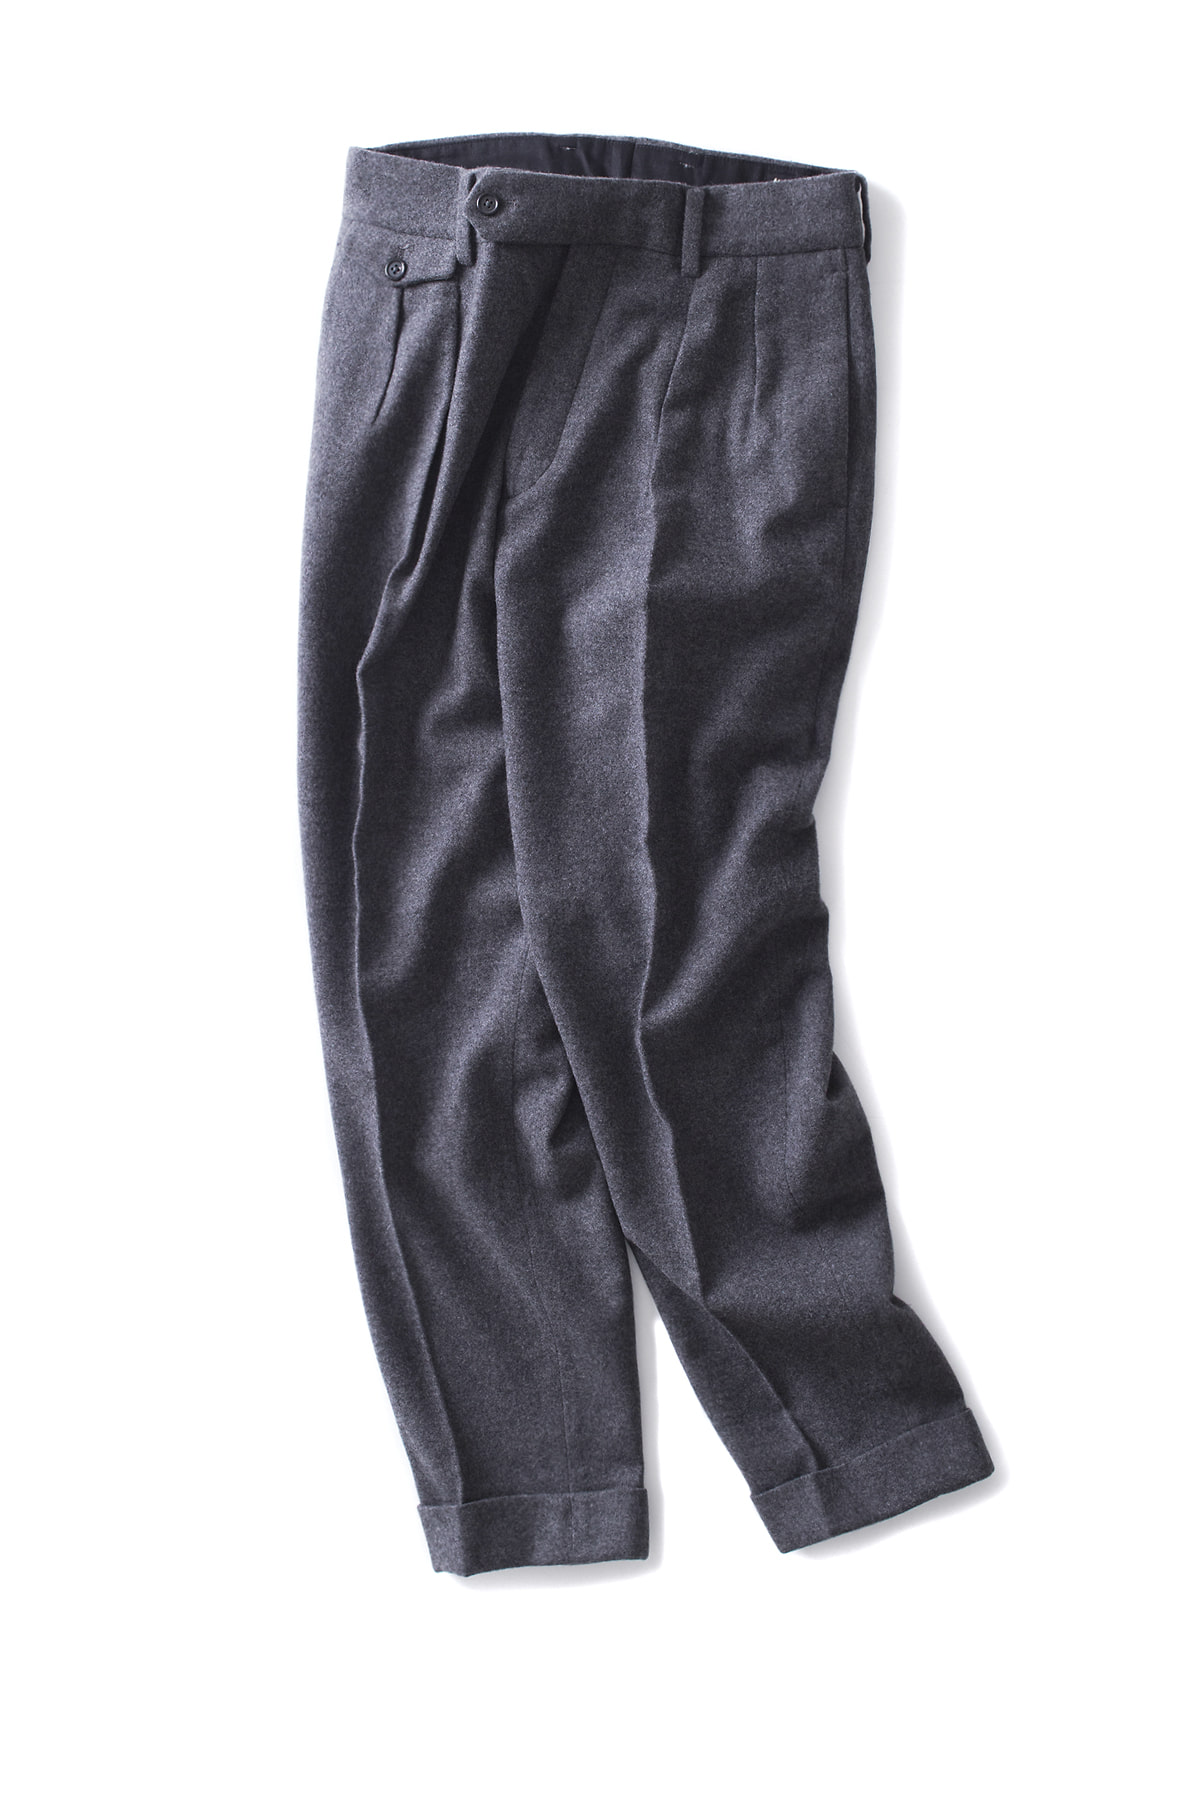 Kaptain Sunshine : Two Pleats Trousers (Charcoal Grey)